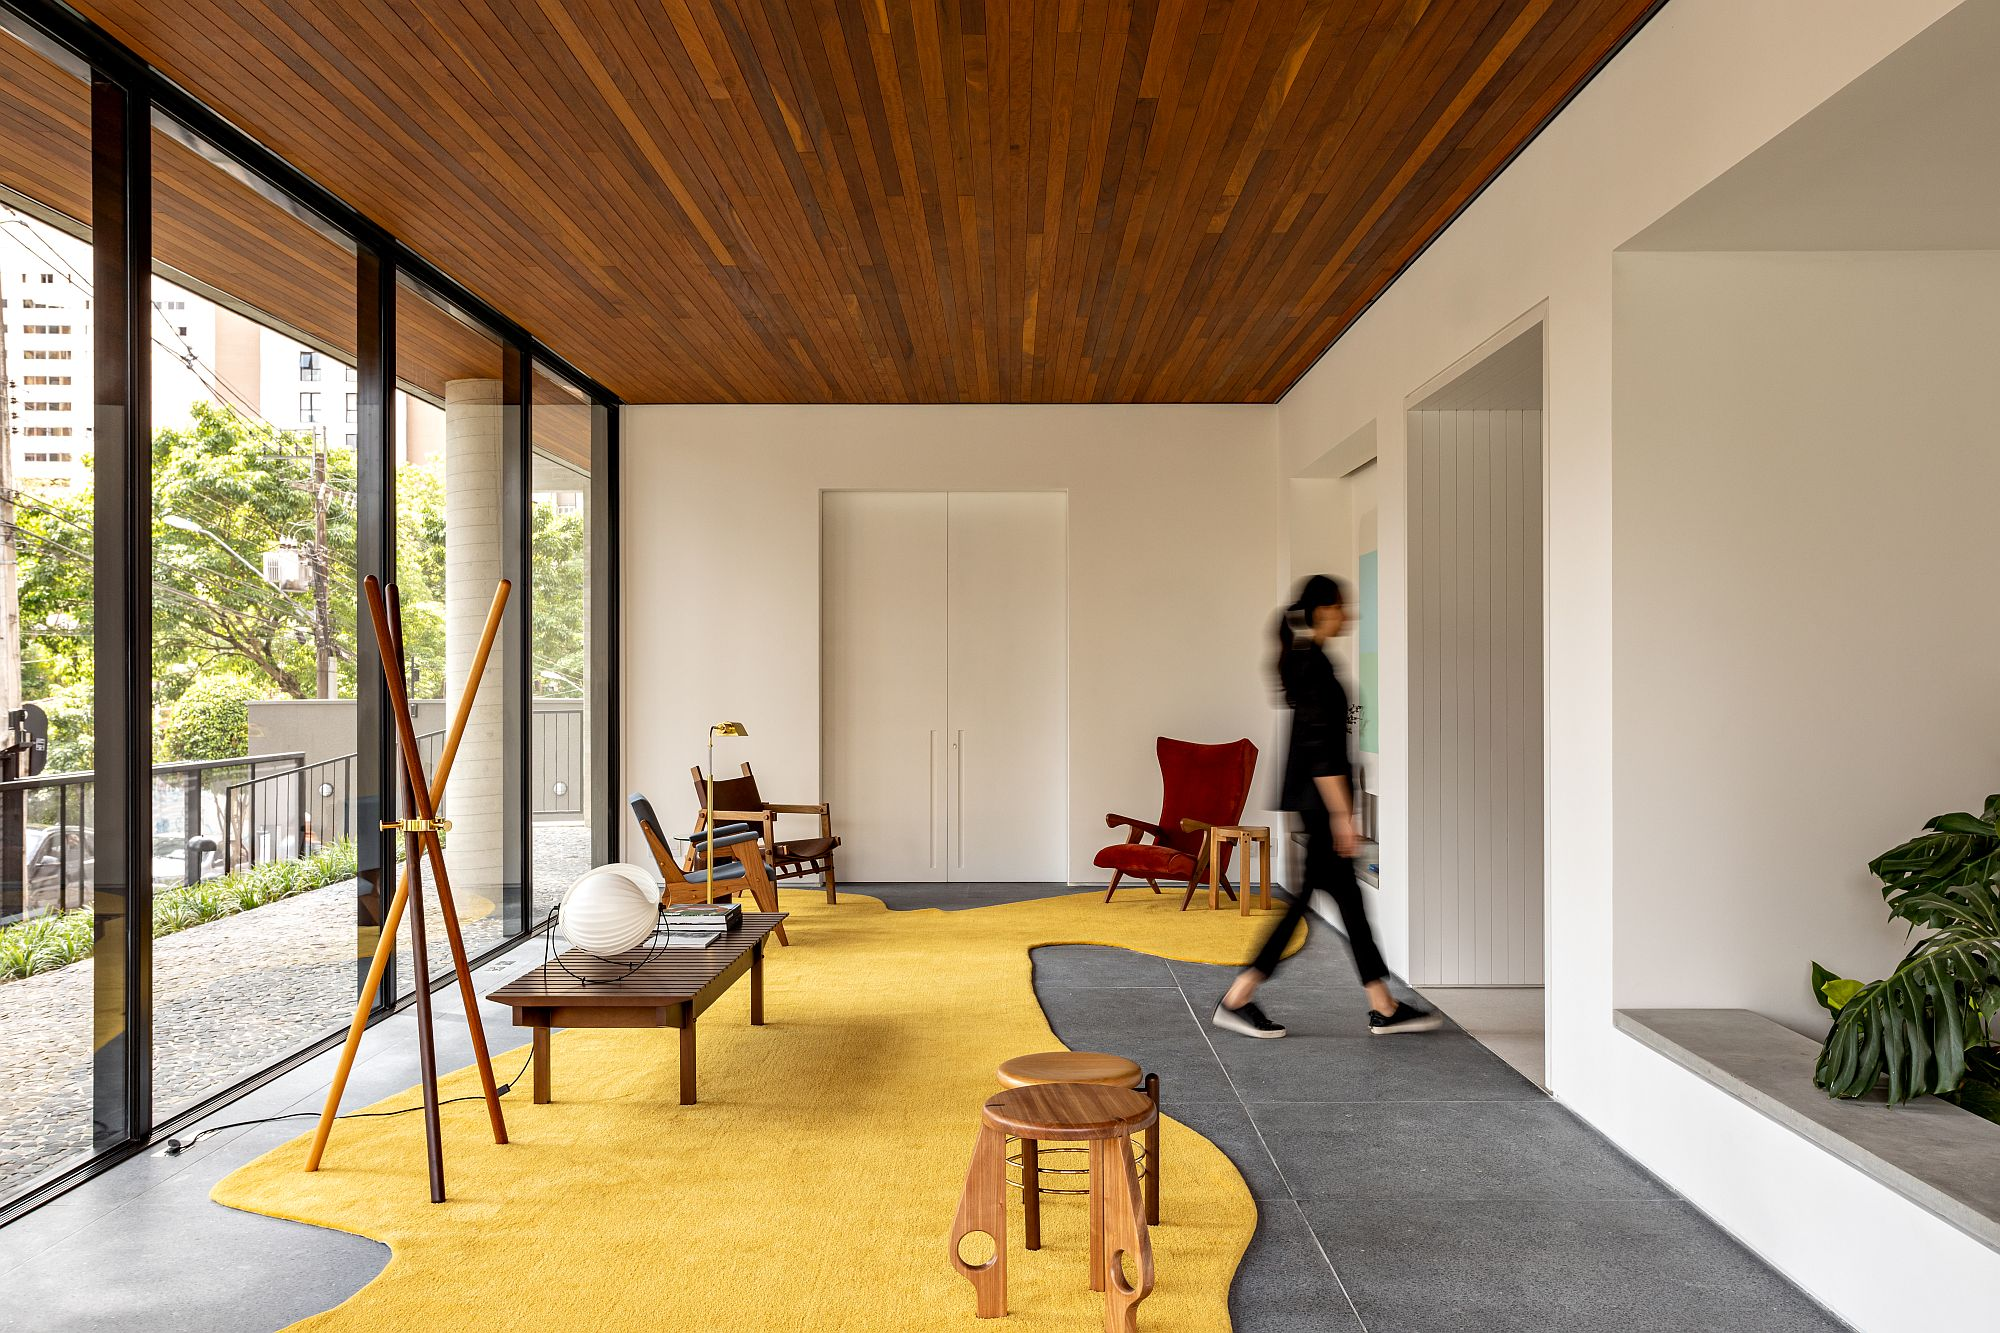 Hall and entry of modern building with a style that feels refined